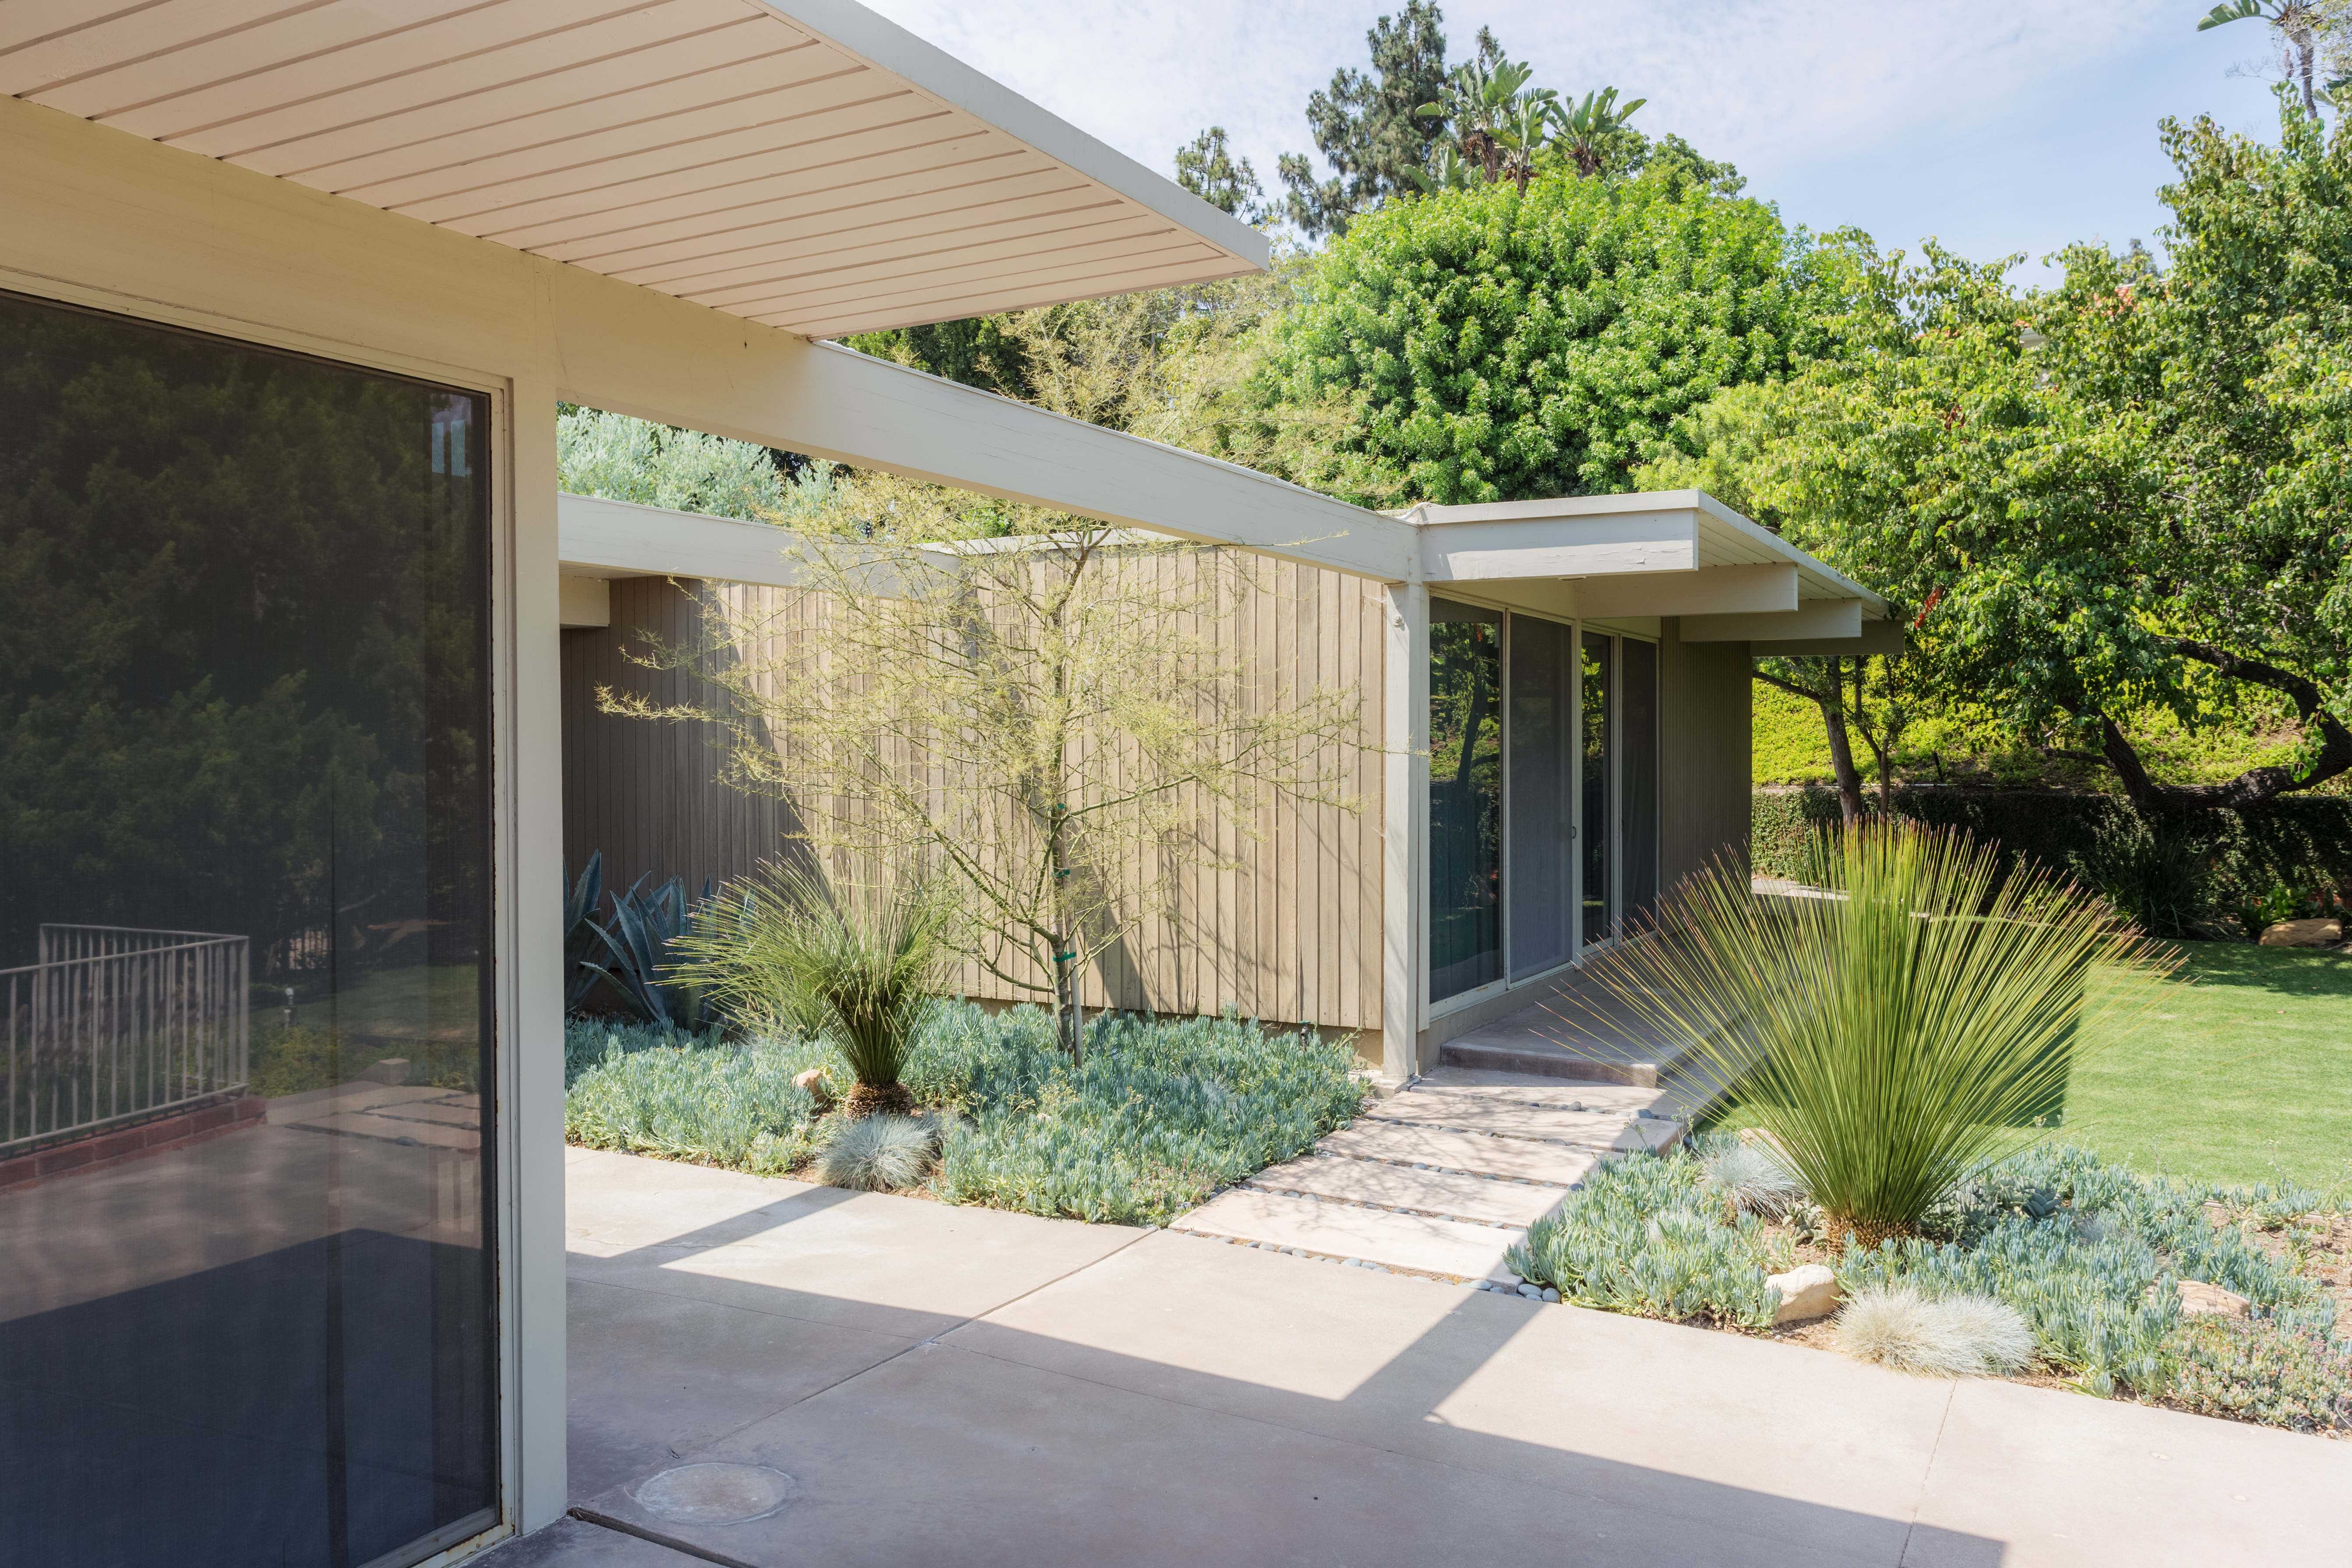 Modern homes los angeles brentwood untouched 1960 mid century modern - Pristine Midcentury Modern Hitting The Market For First Time Since 1956 Asks 13 9m